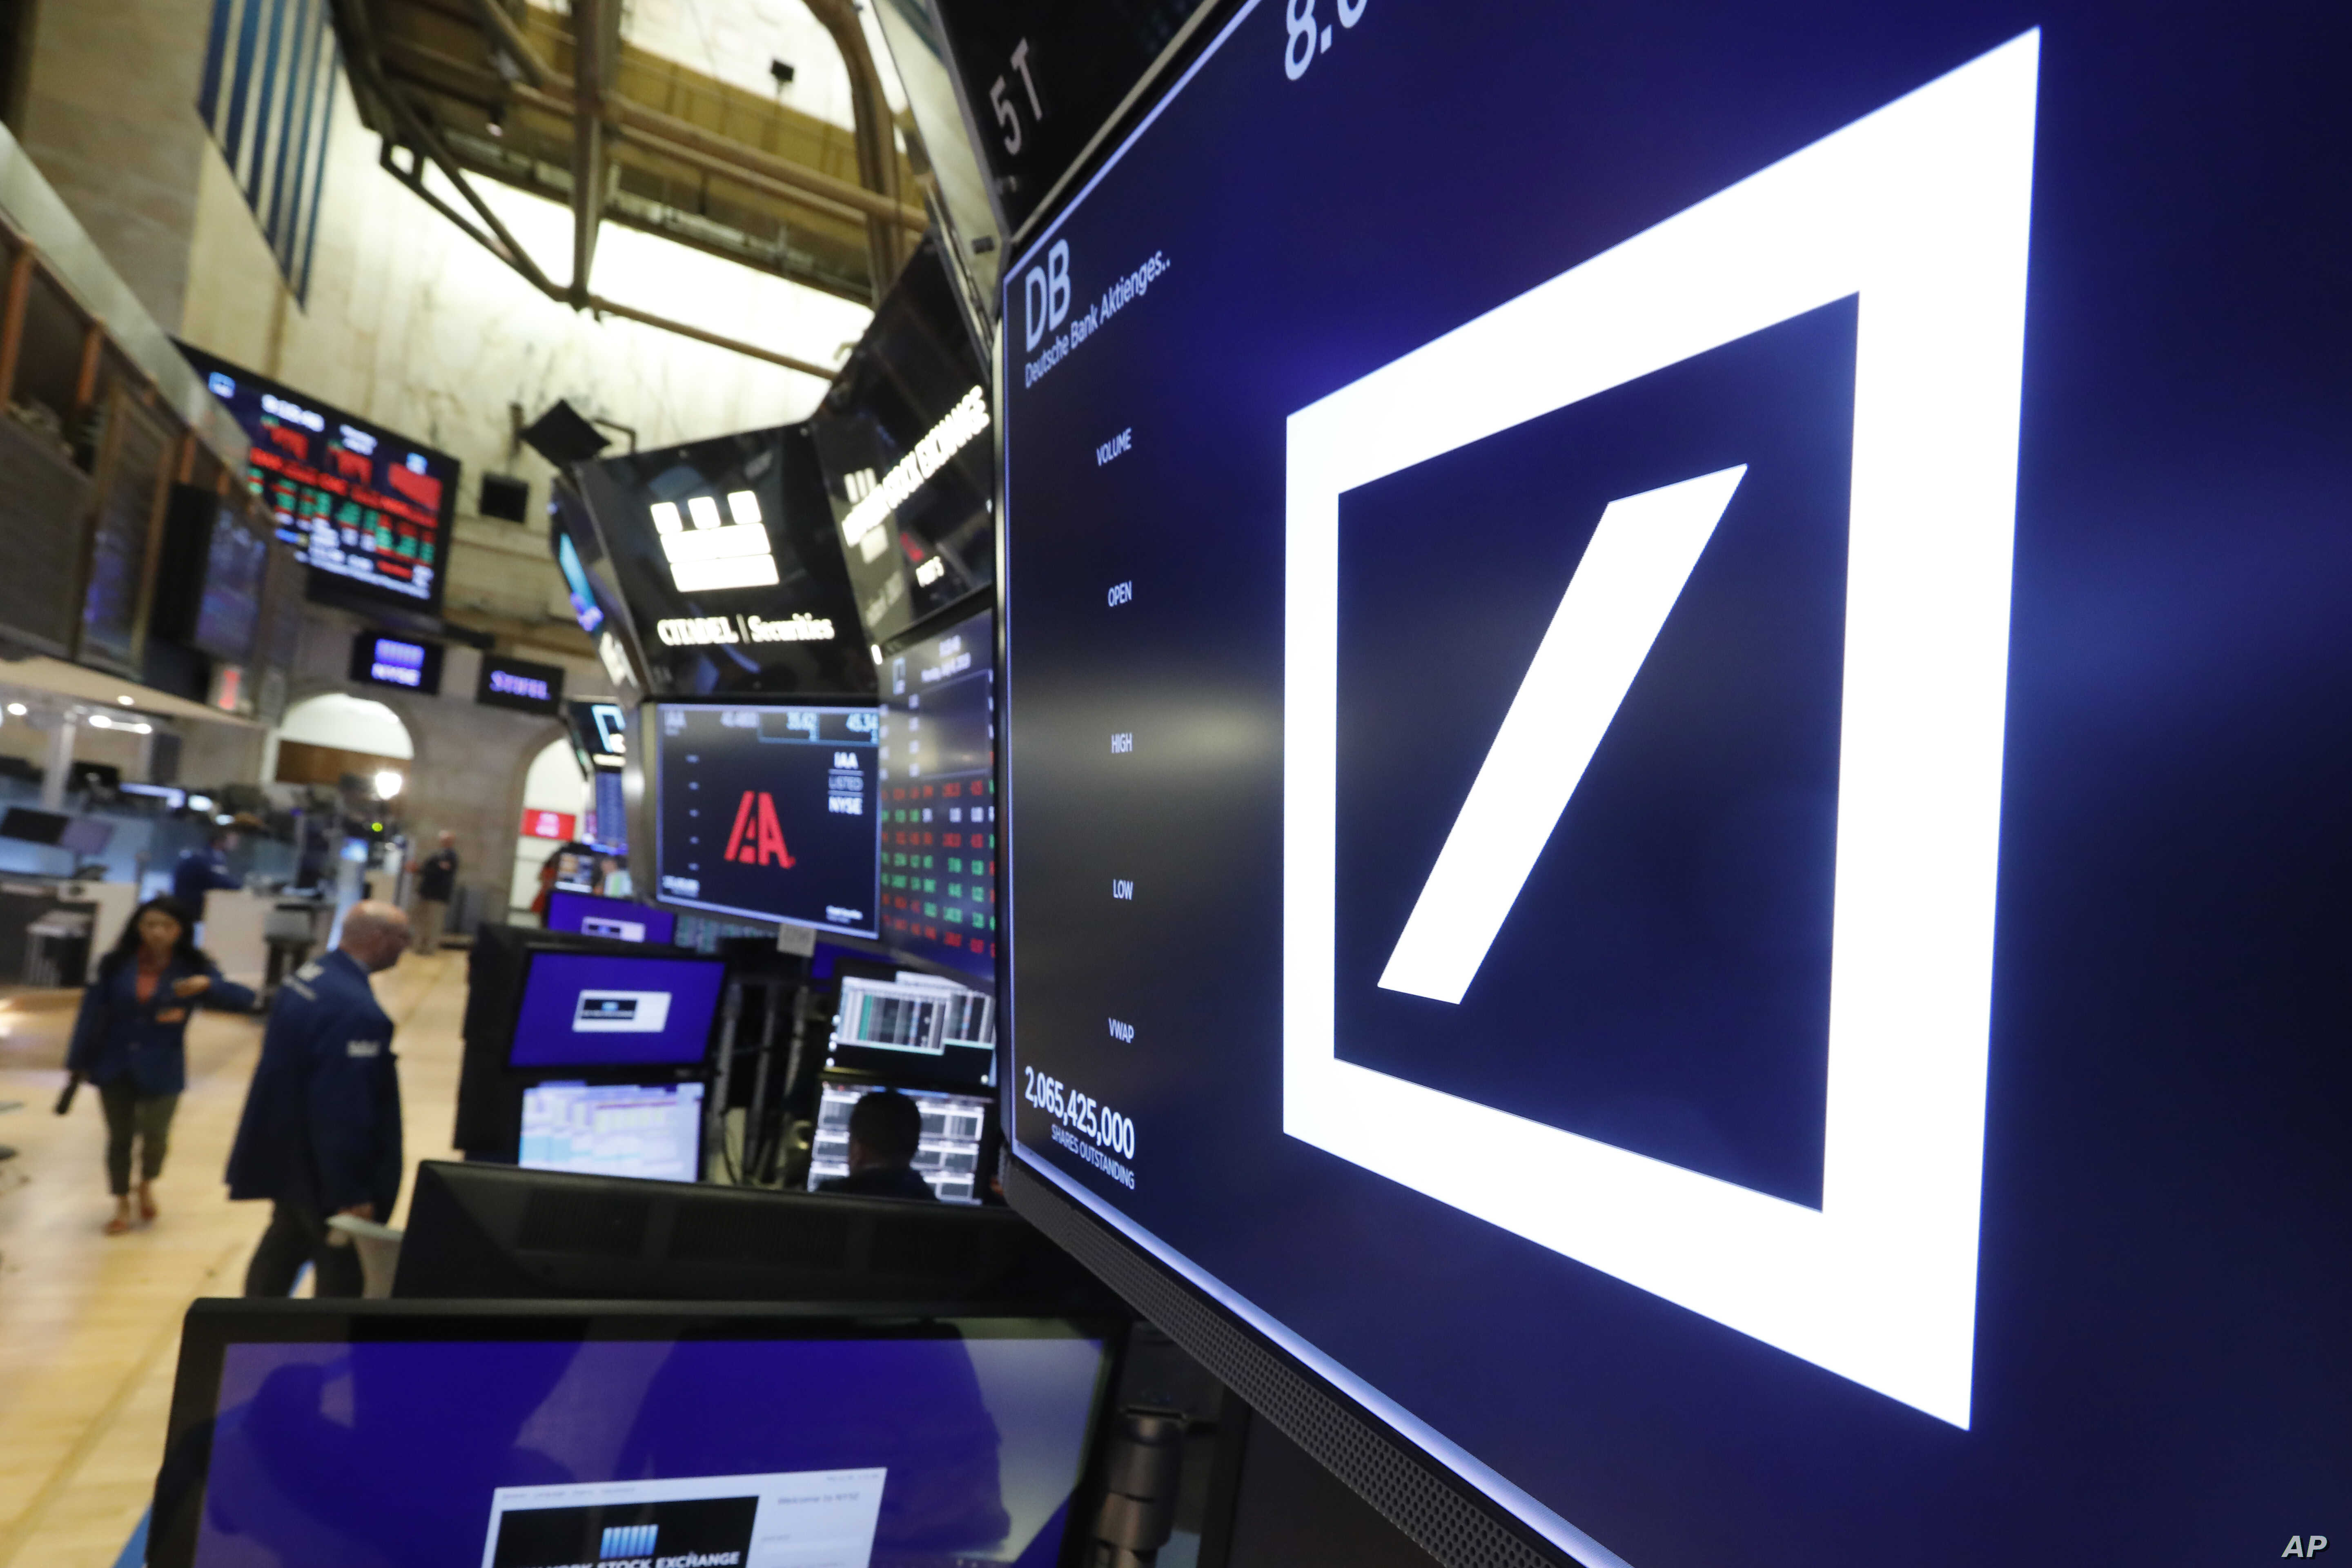 The logo for Deutsche Bank appears above a trading post on the floor of the New York Stock Exchange, July 8, 2019.